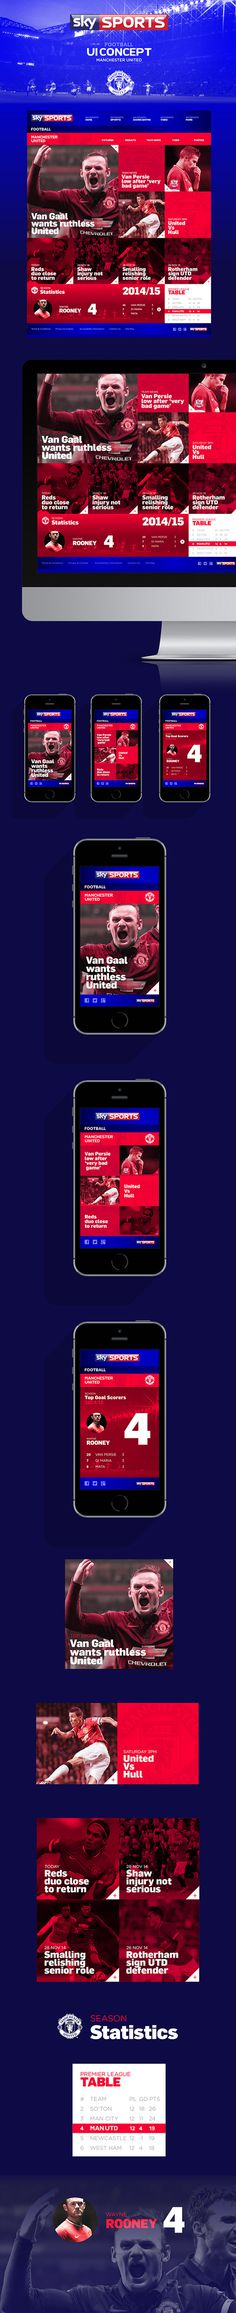 Sky Sports Football // UI Design Concept on Behance #red #ux #responsive #clean #website #grid #ui #mobile #sports #football #layout #web